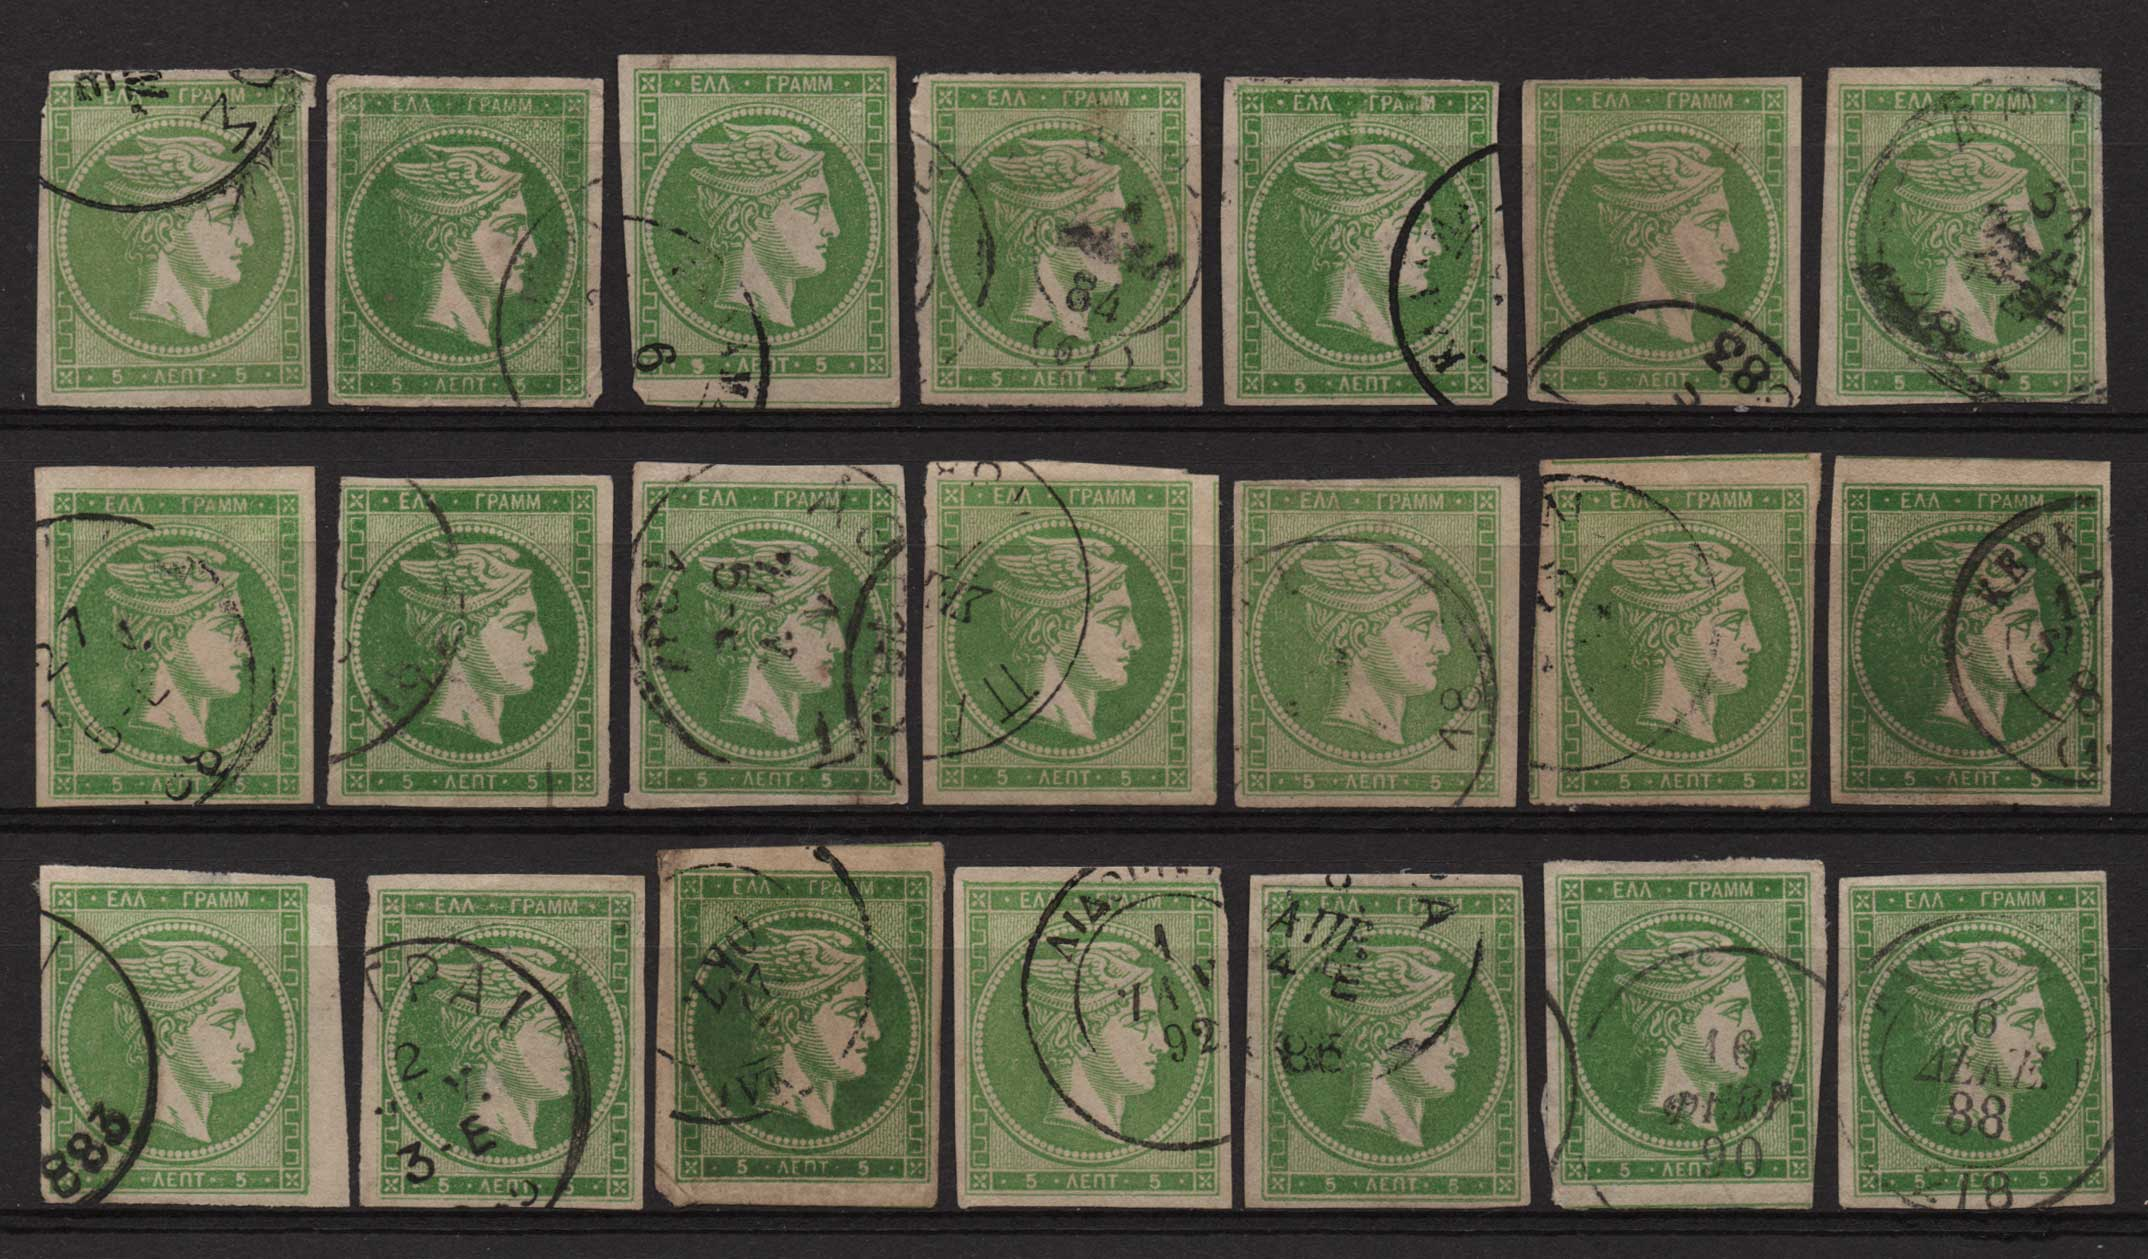 Lot 10 - -  LARGE HERMES HEAD large hermes head -  Athens Auctions Public Auction 67 General Stamp Sale